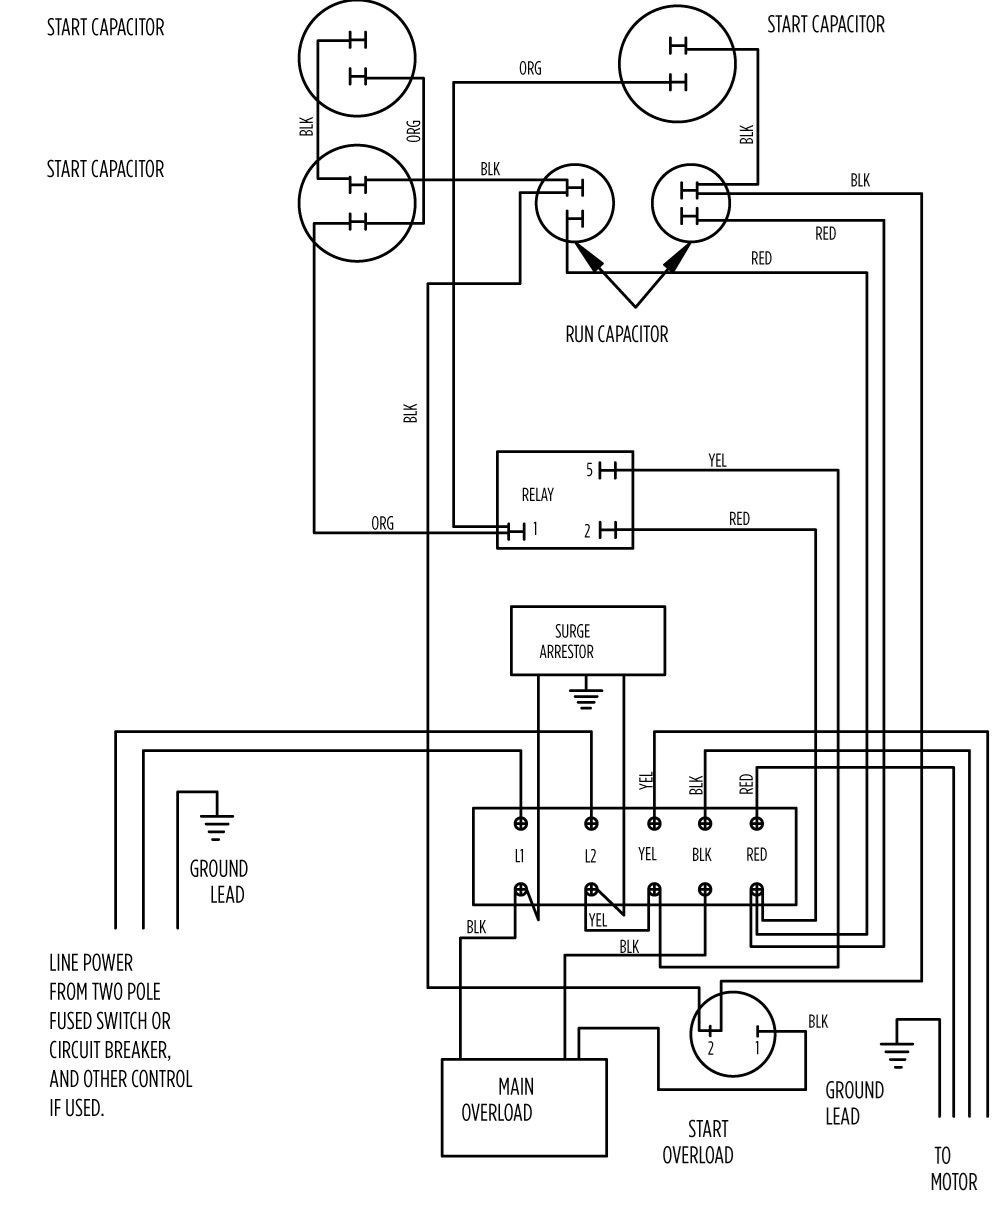 Primary Single Phase Capacitor Wiring Diagram | Wiring Library - Electric Motor Capacitor Wiring Diagram